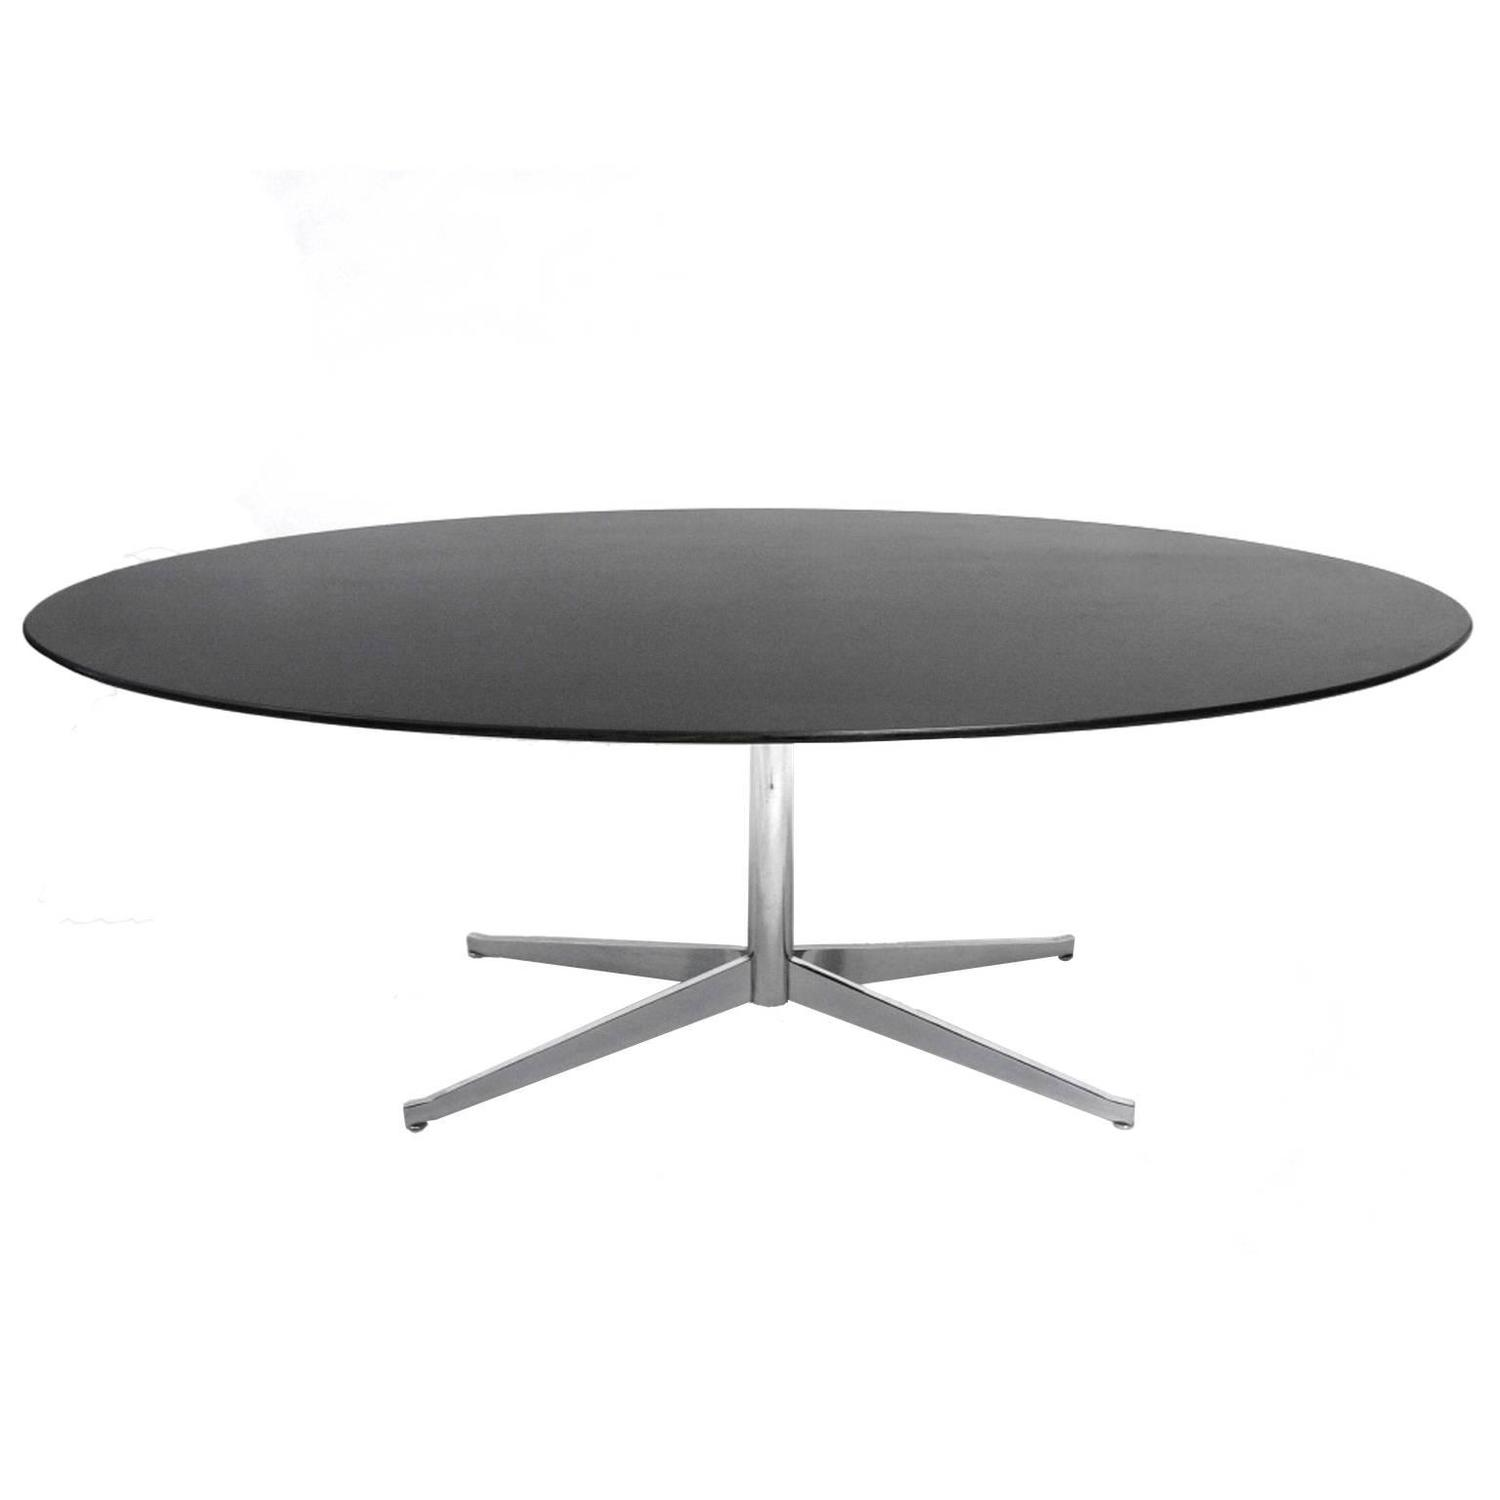 Conference Or Dining Table In The Manner Of Florence Knoll